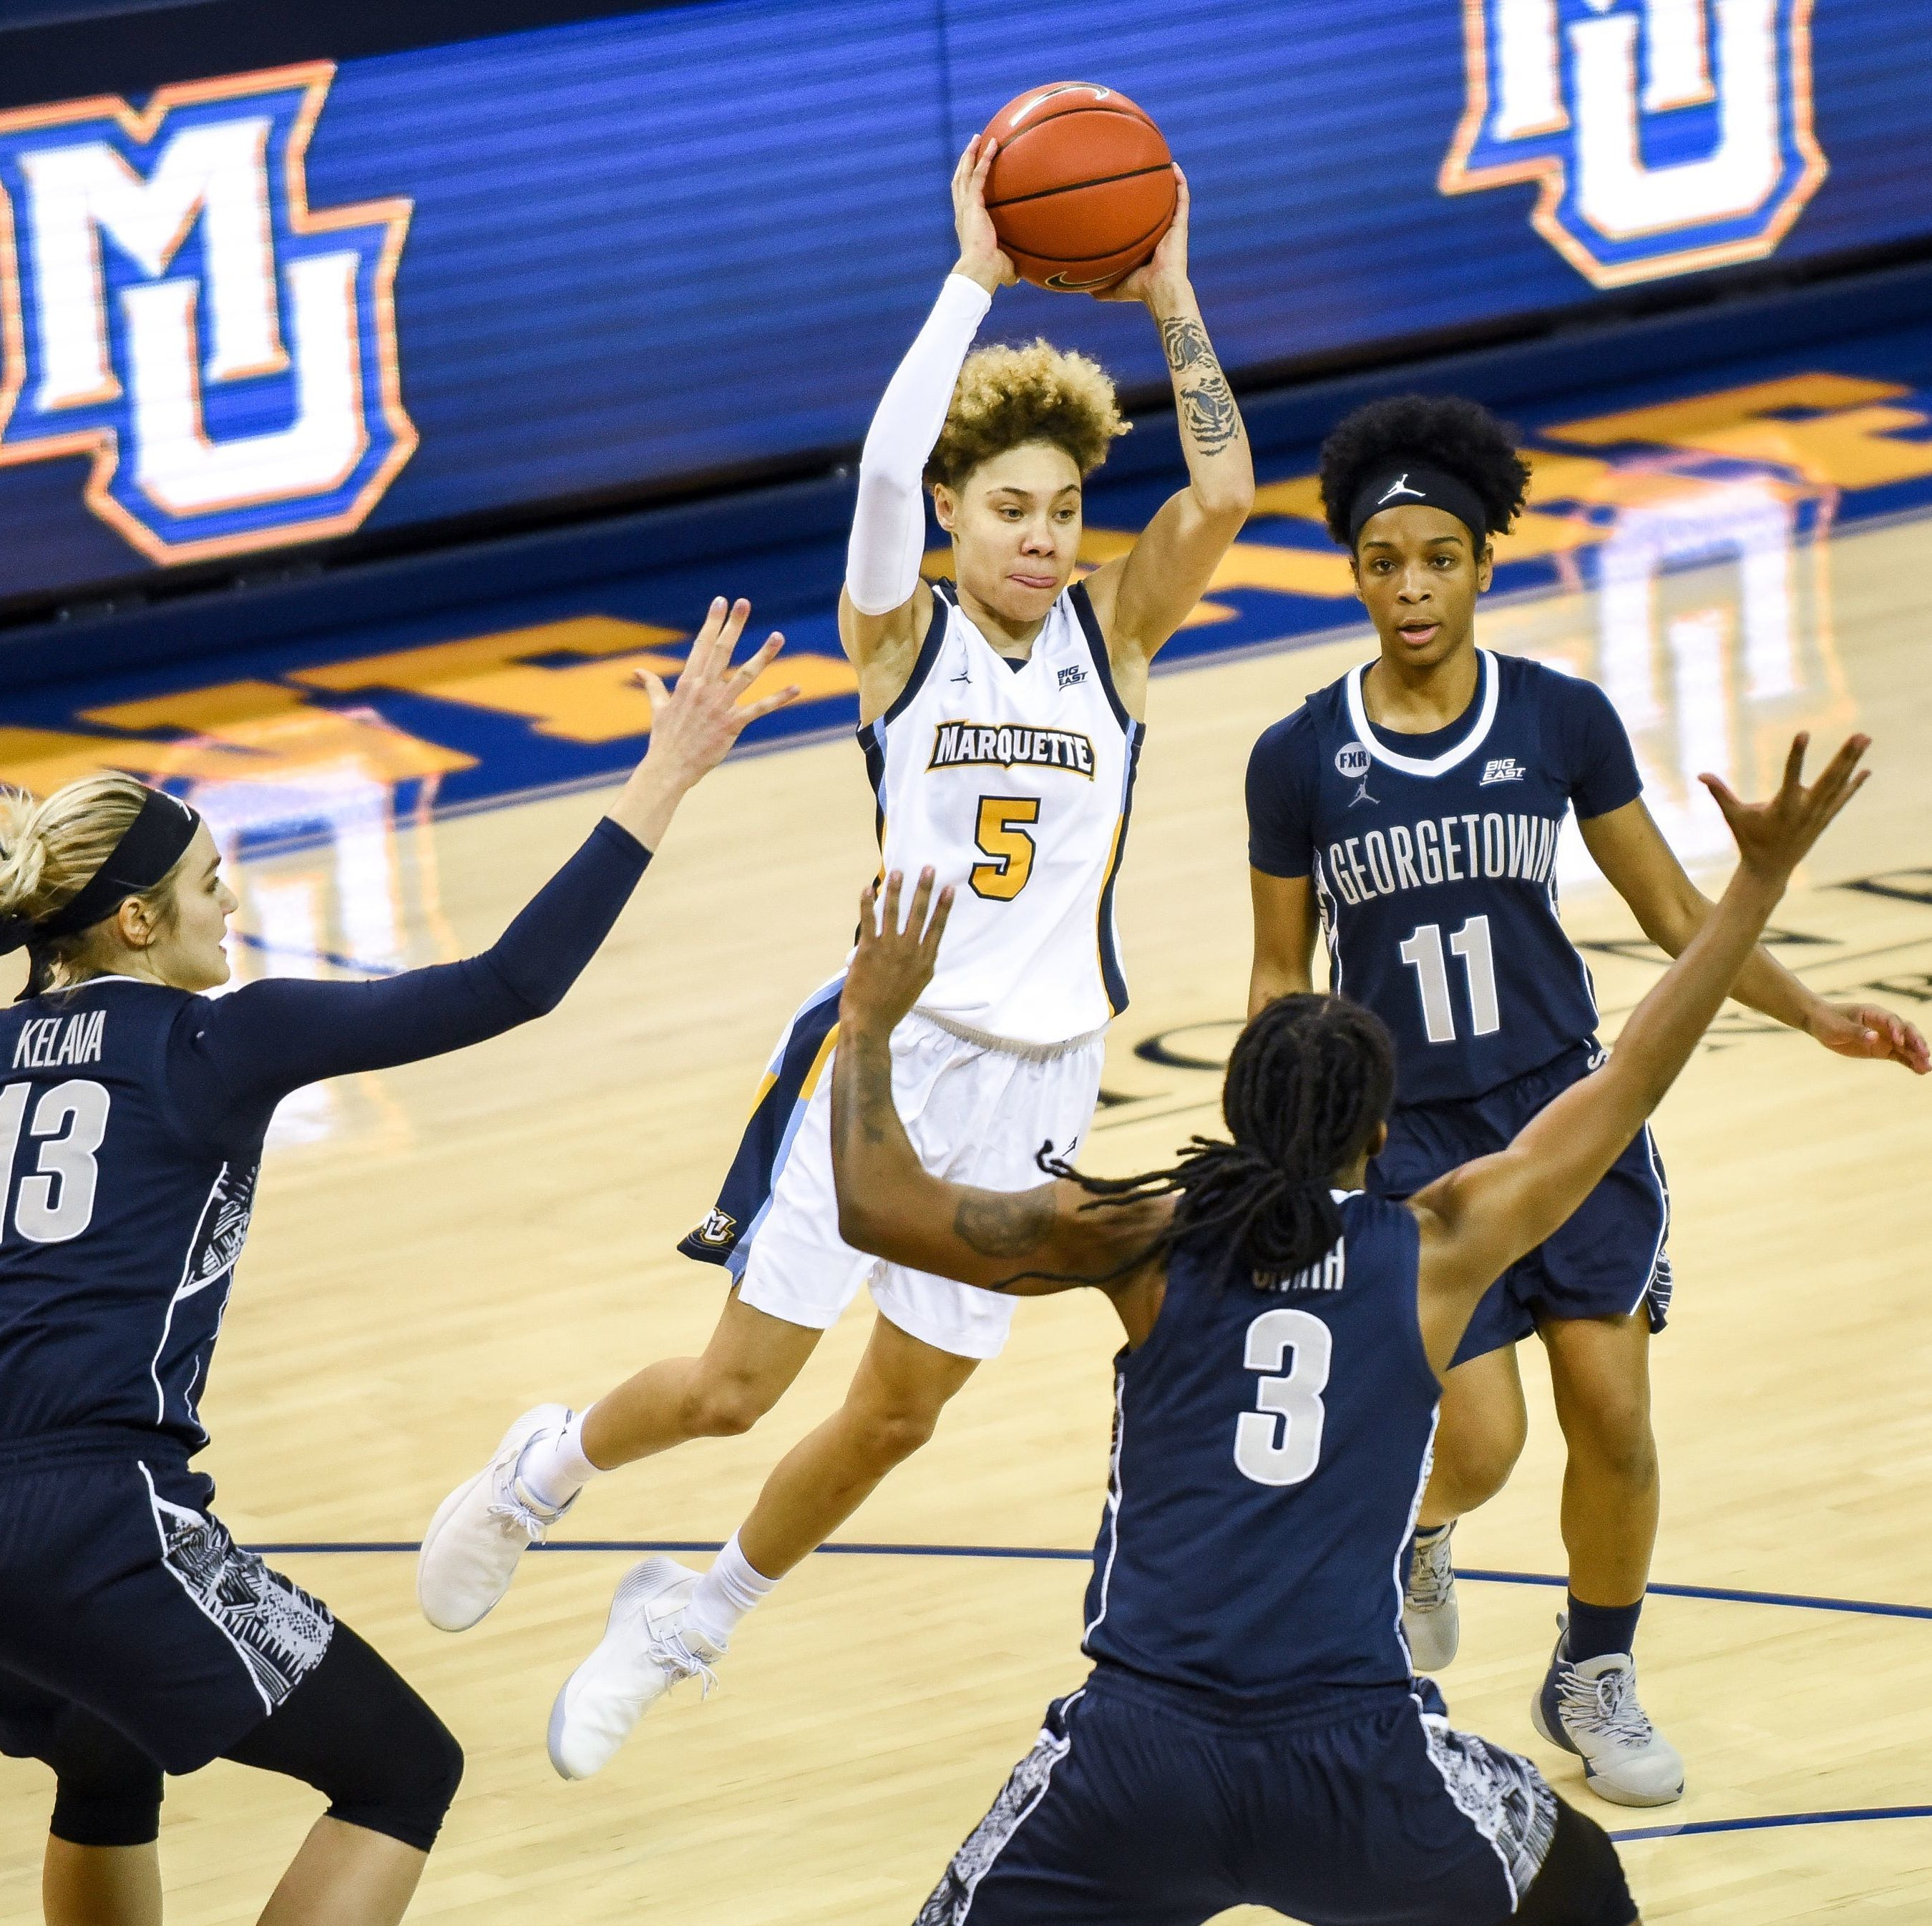 Southwest's Hiedeman drafted by the Minnesota Lynx, traded to Connecticut